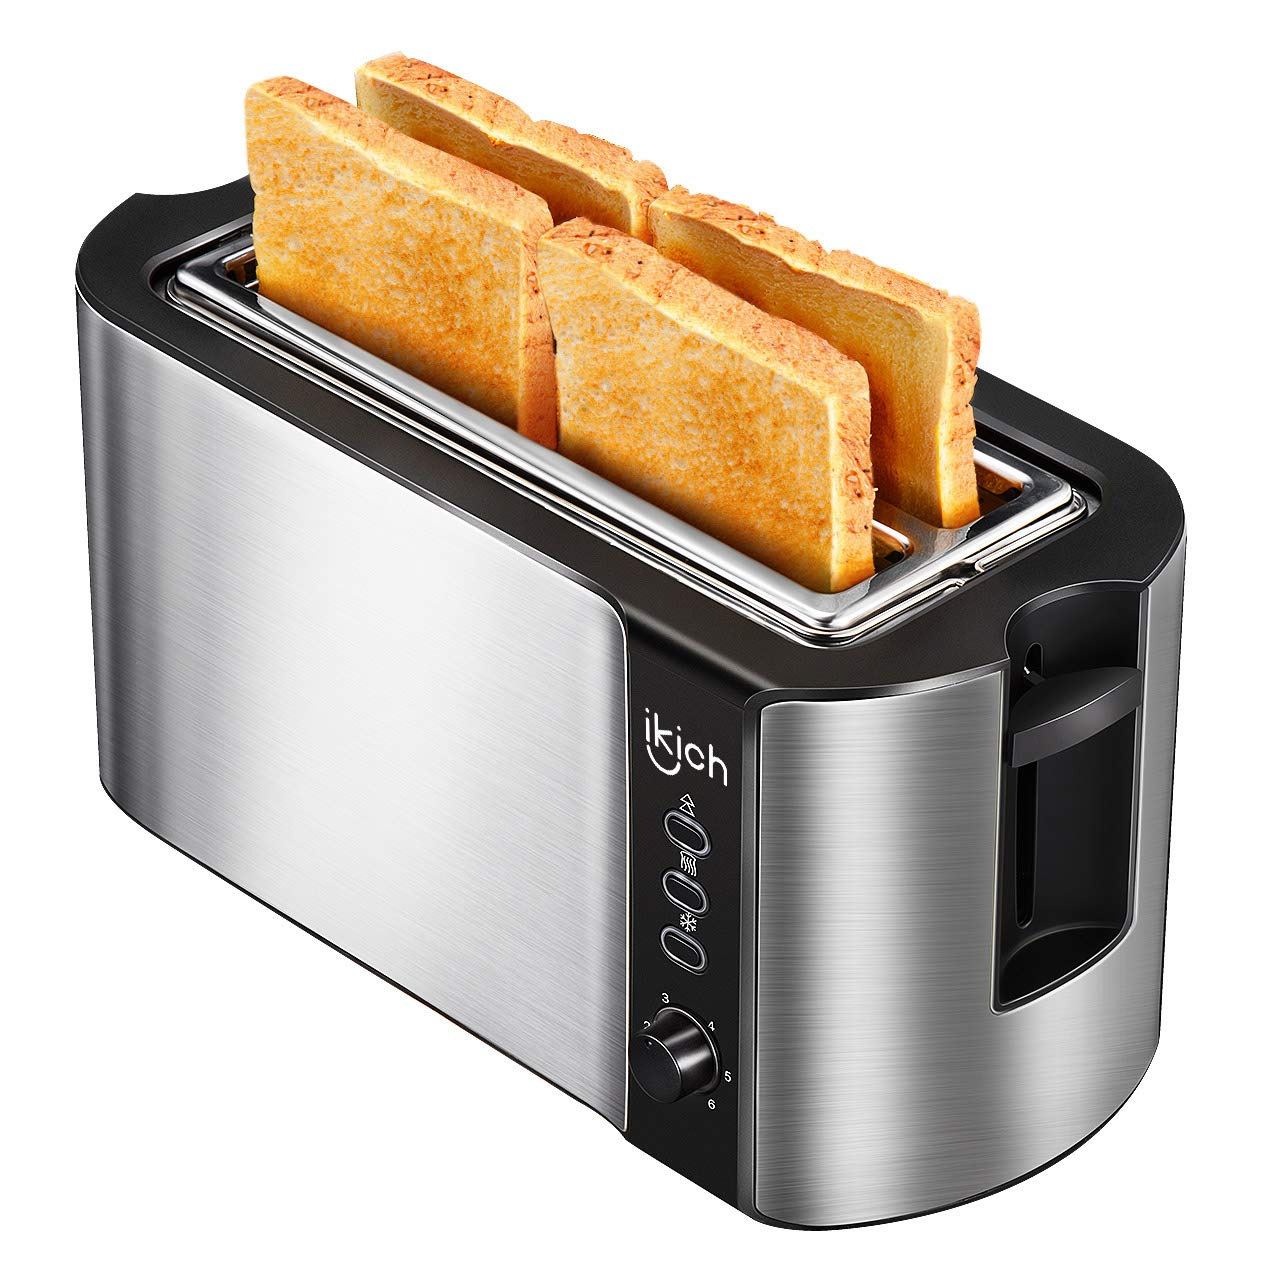 IKICH 4 Slice Long Slot Toaster Best Rated Prime, Stainless Steel Bread Toasters(Warming Rack, 6 Bread Shade Settings, Defrost/Reheat/Cancel Function, Extra Wide Slots, Removable Crumb Tray, 1300W) by IKICH